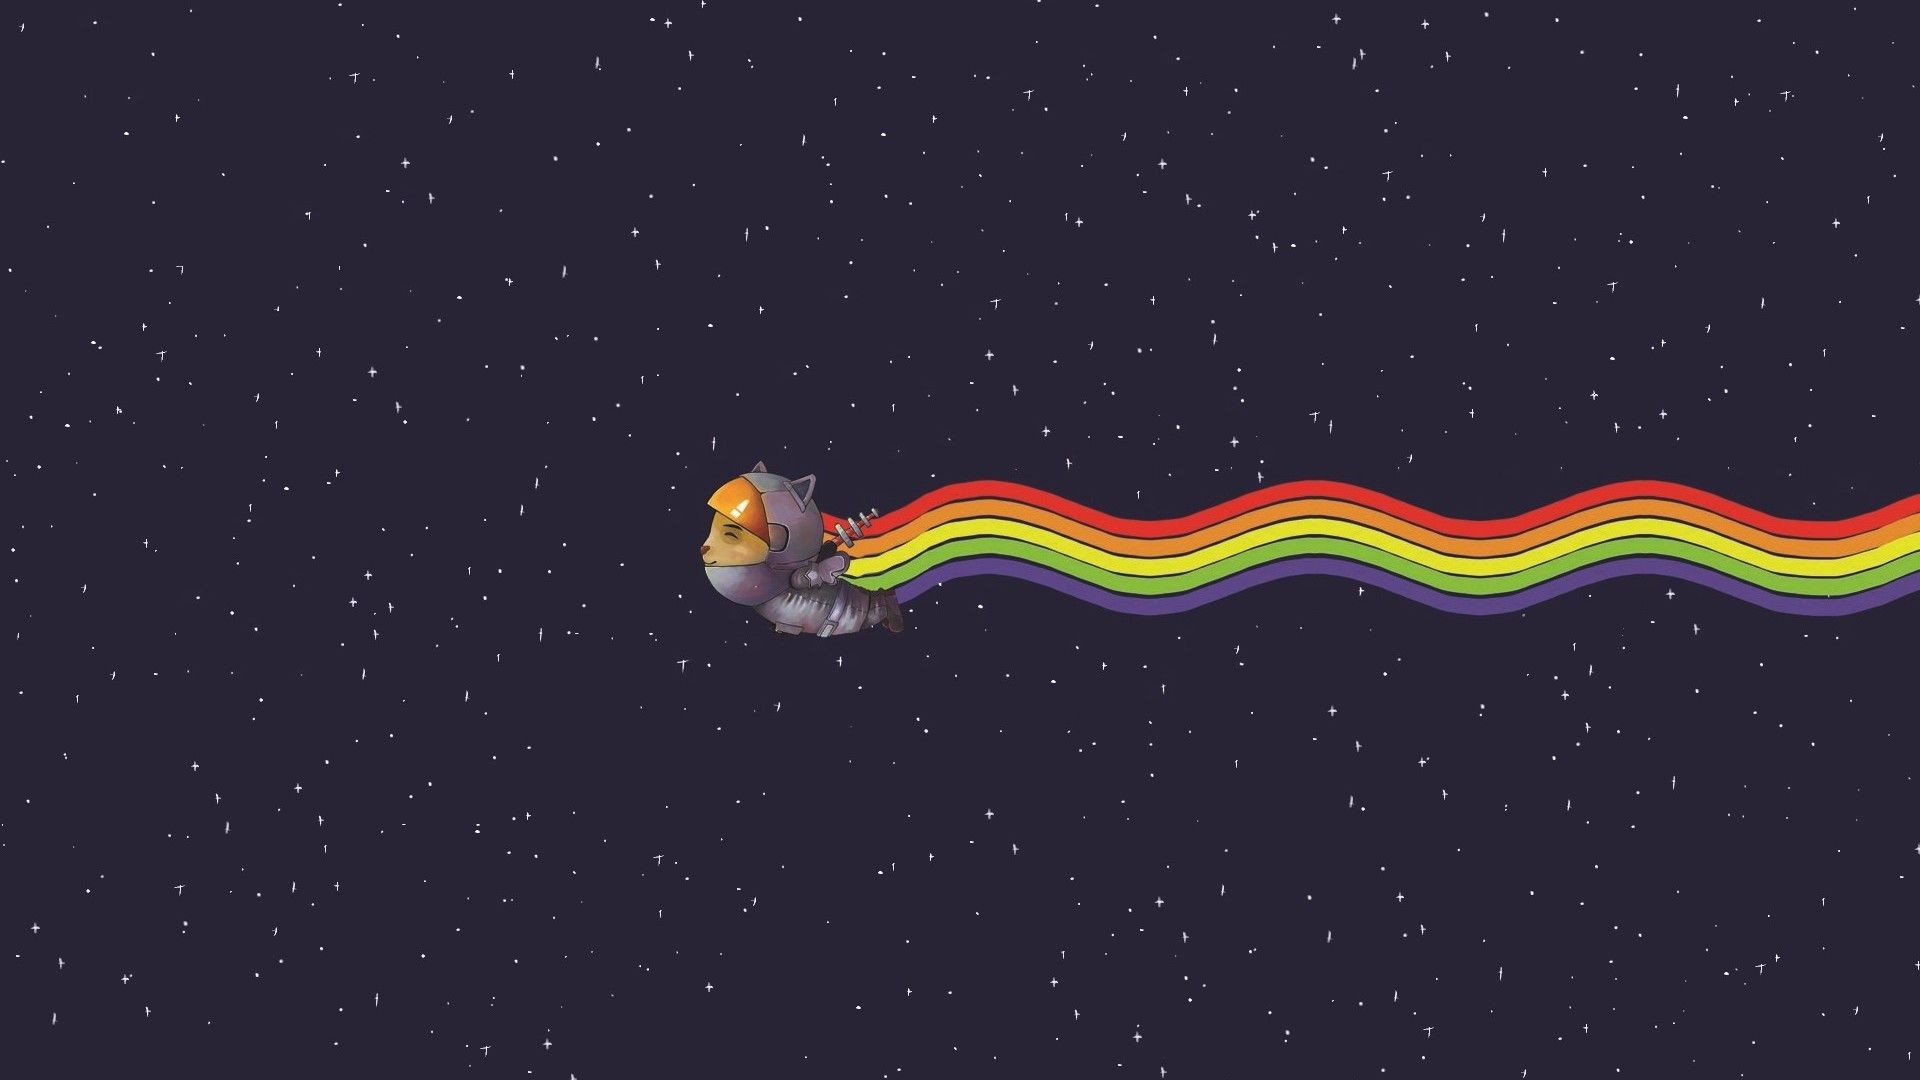 nyan cat iphone wallpaper 64 images